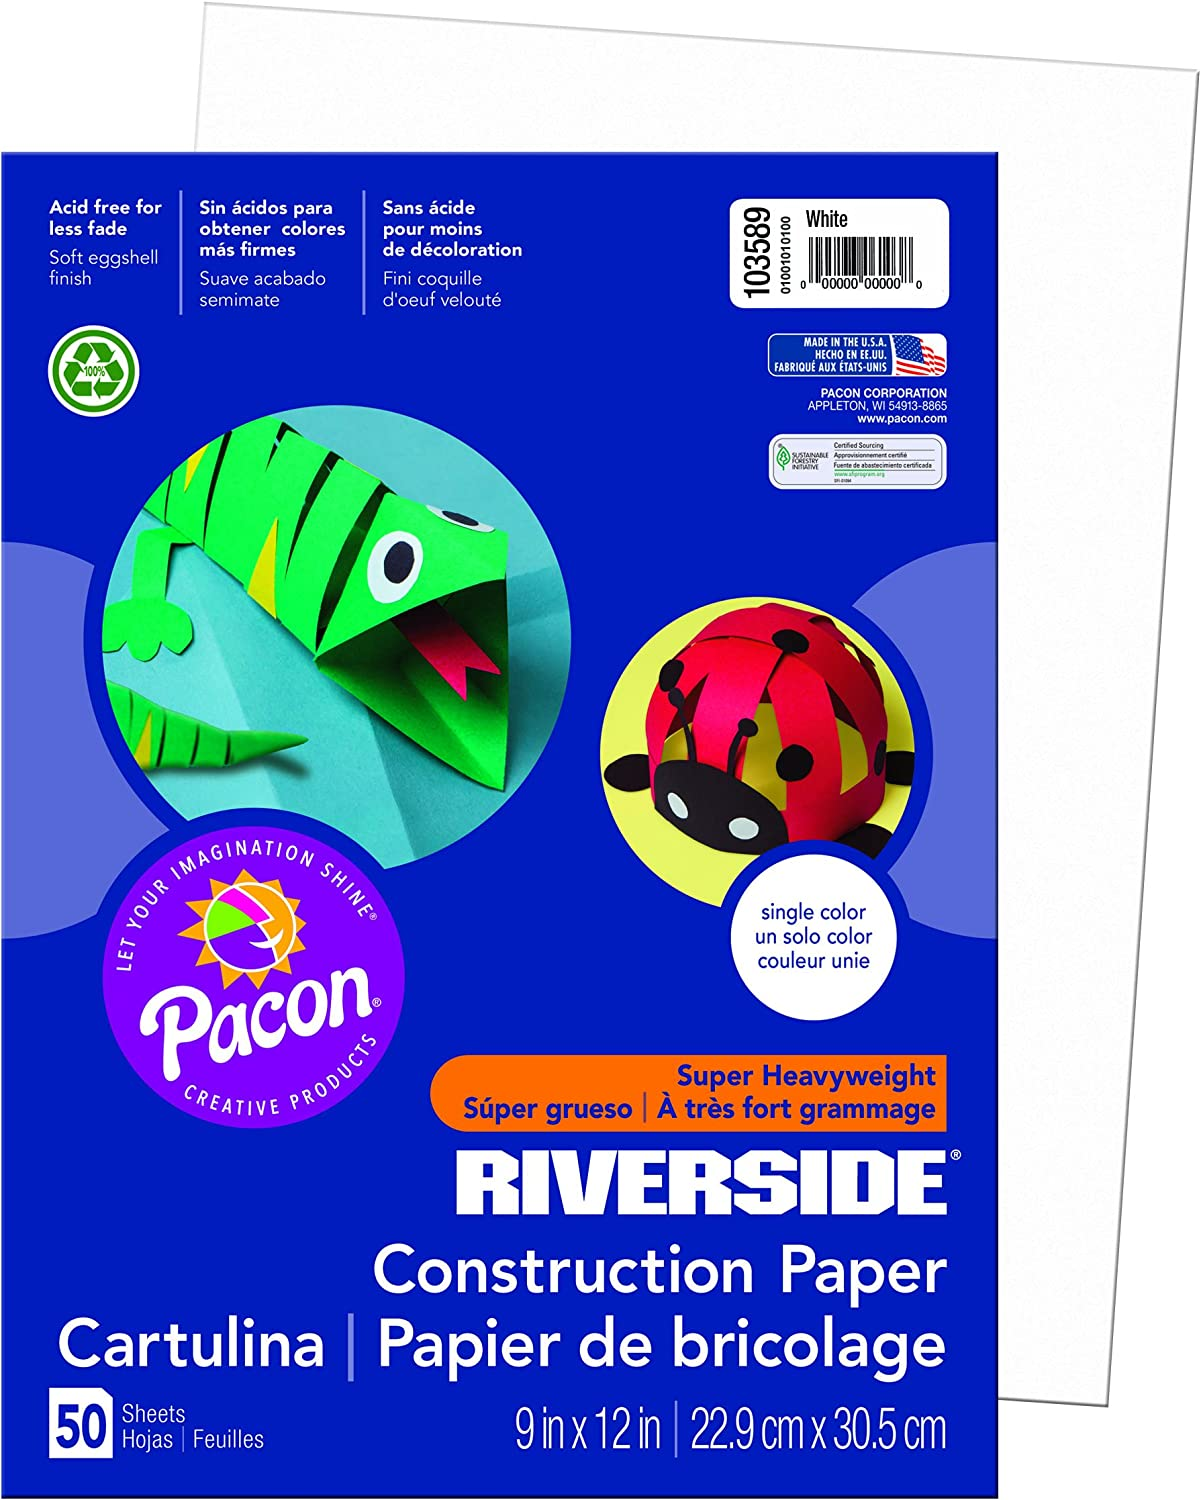 Riverside 3D Construction Paper Green 50 Sheets 9 x 12